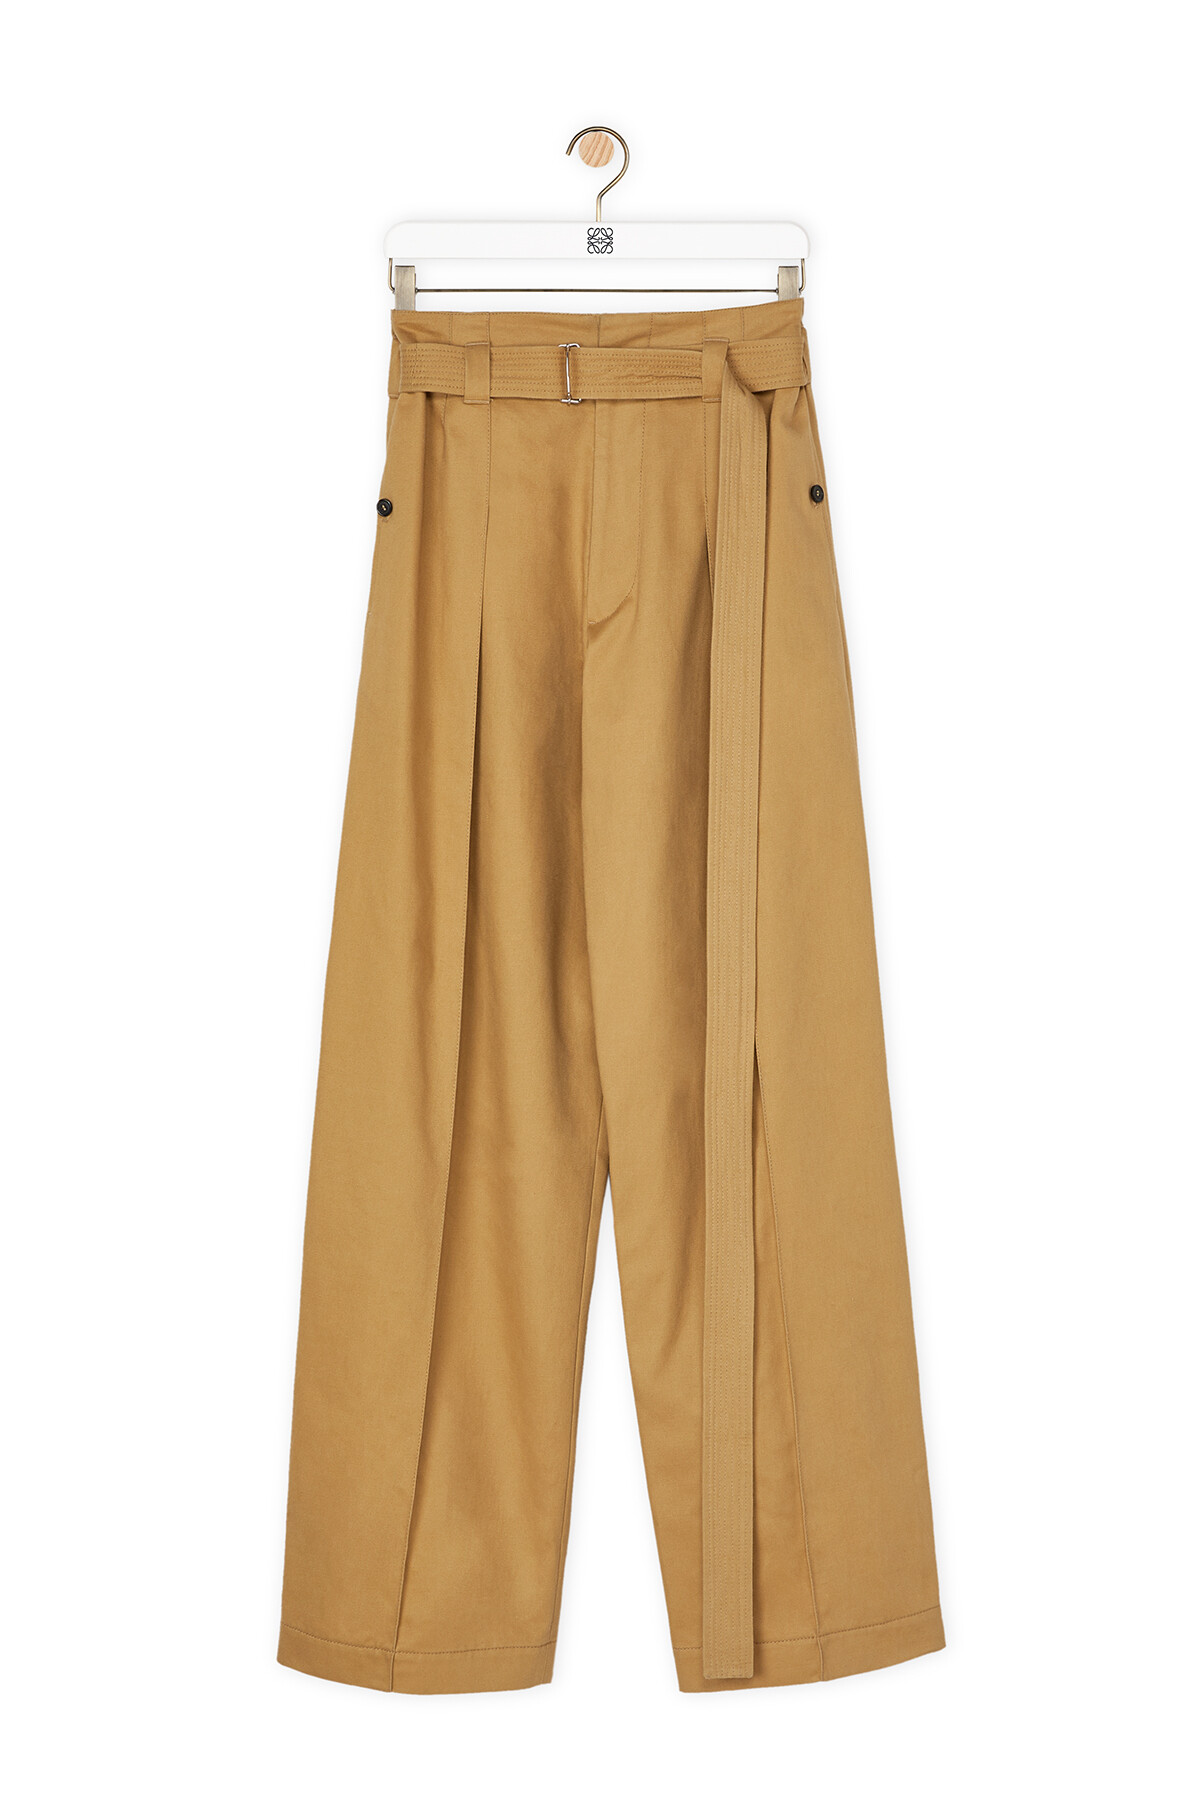 LOEWE Belted Trousers Beige front